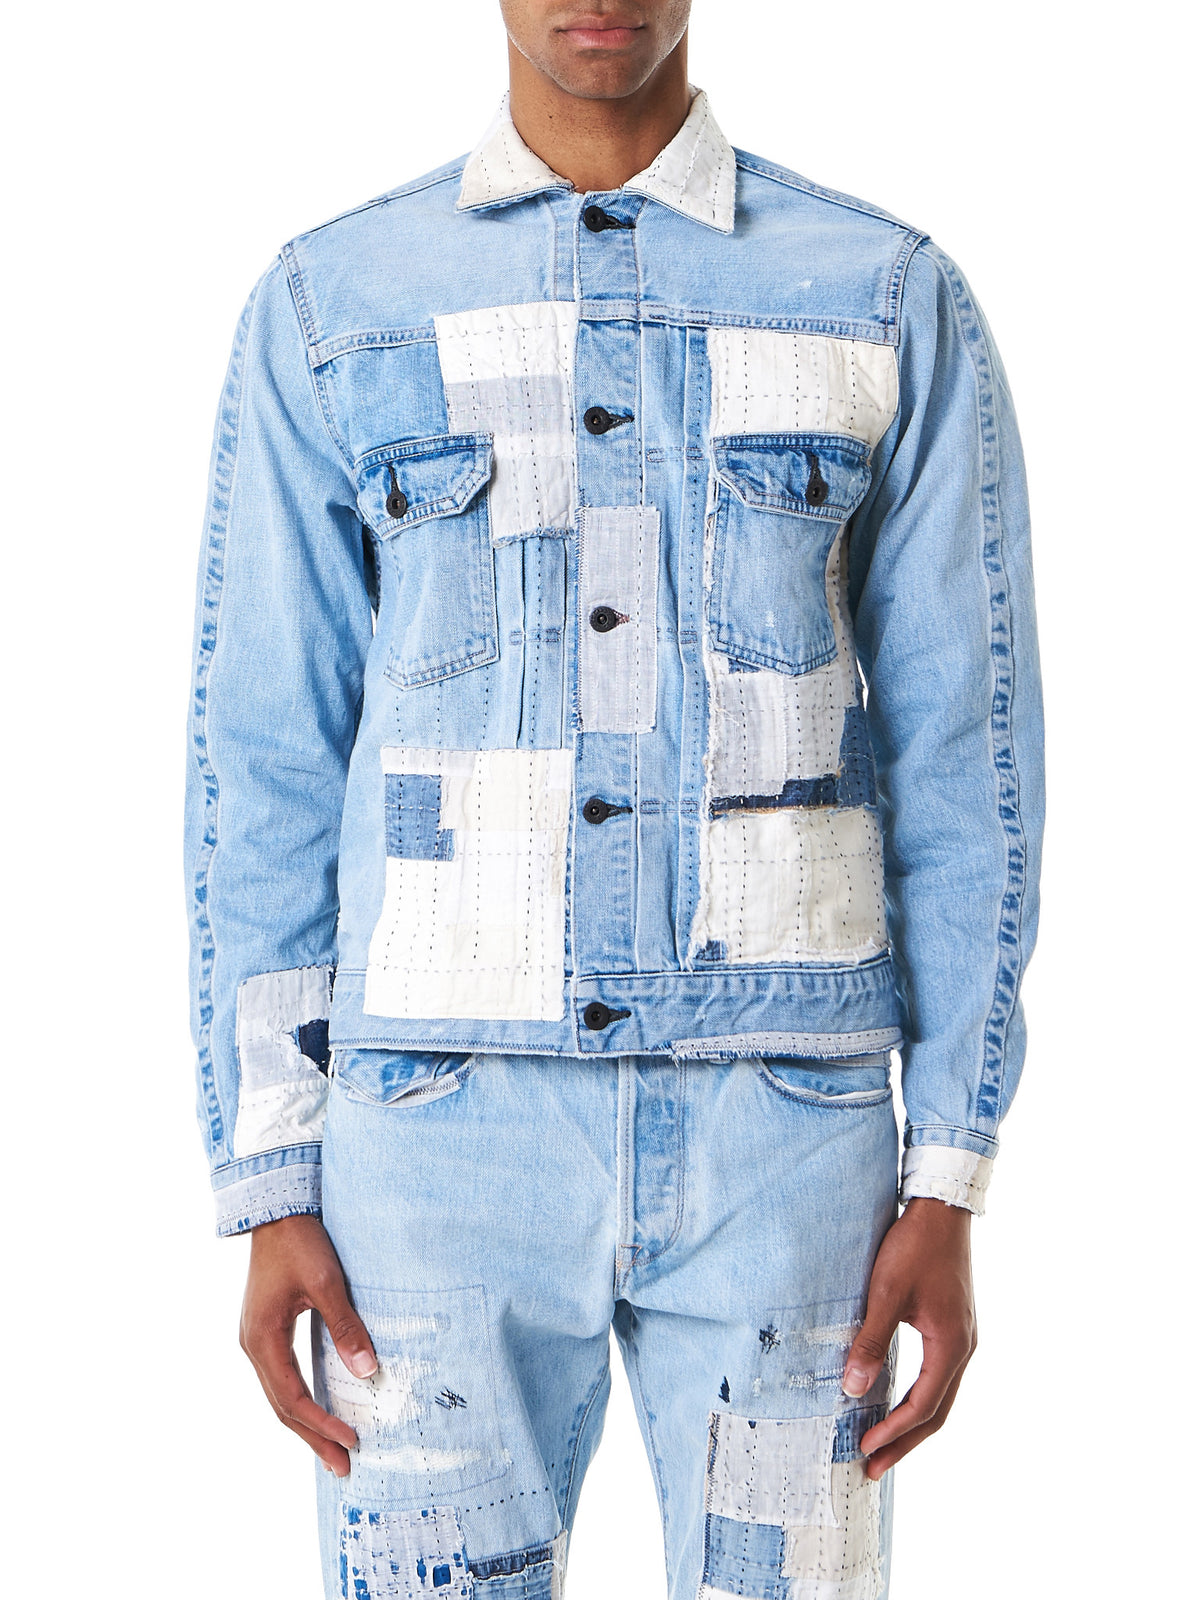 Patchwork Denim Jacket (961796-INDIGO) - H. Lorenzo